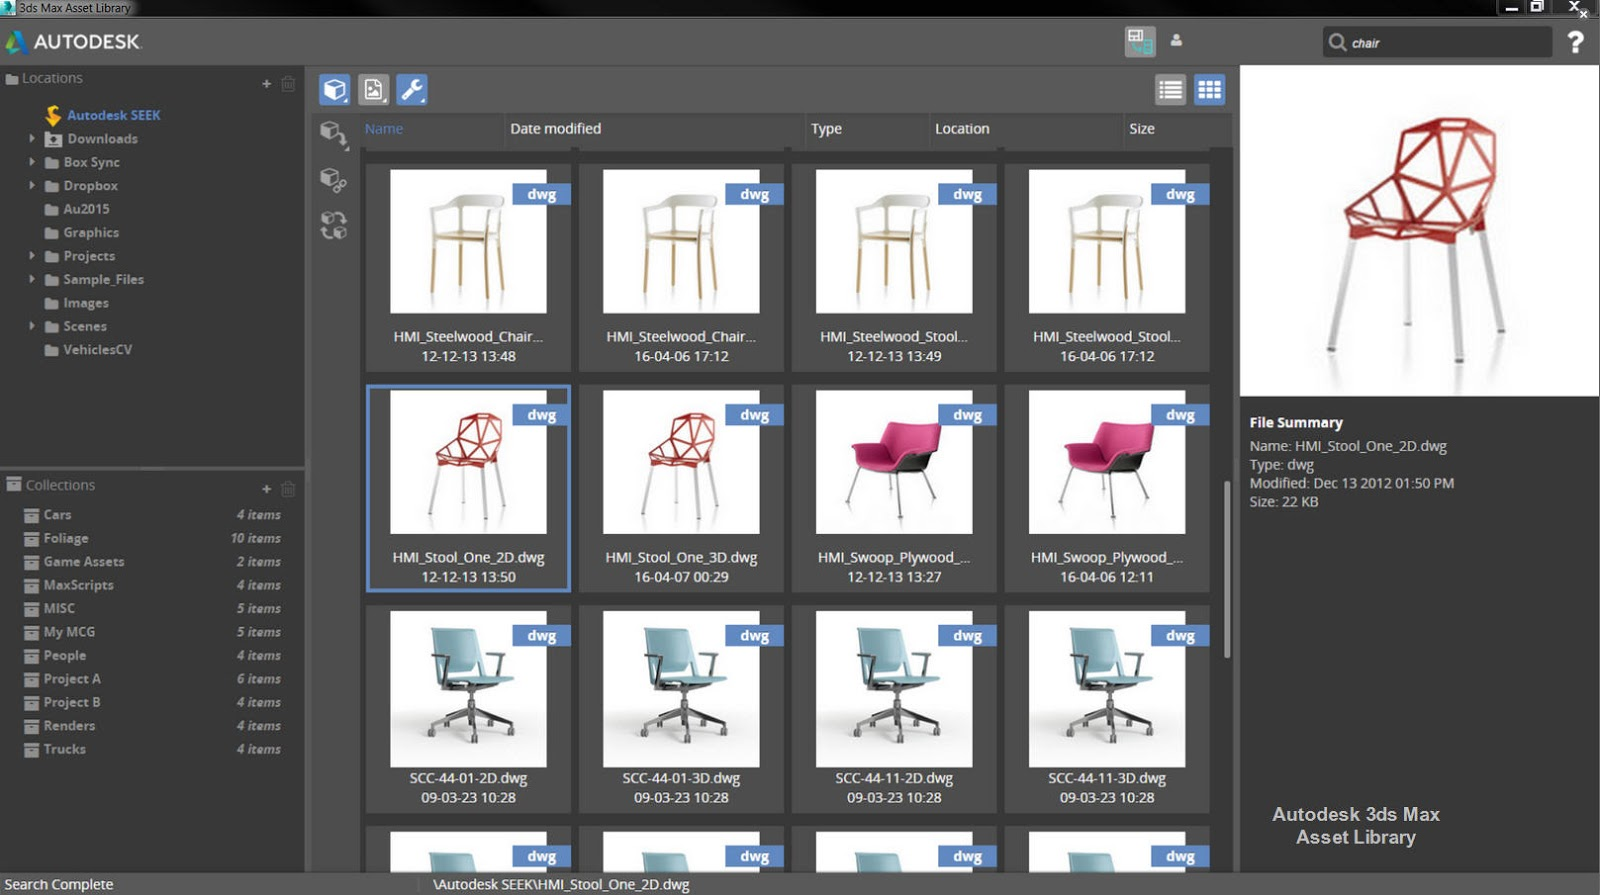 Download Autodesk 3ds Max Asset Library V115